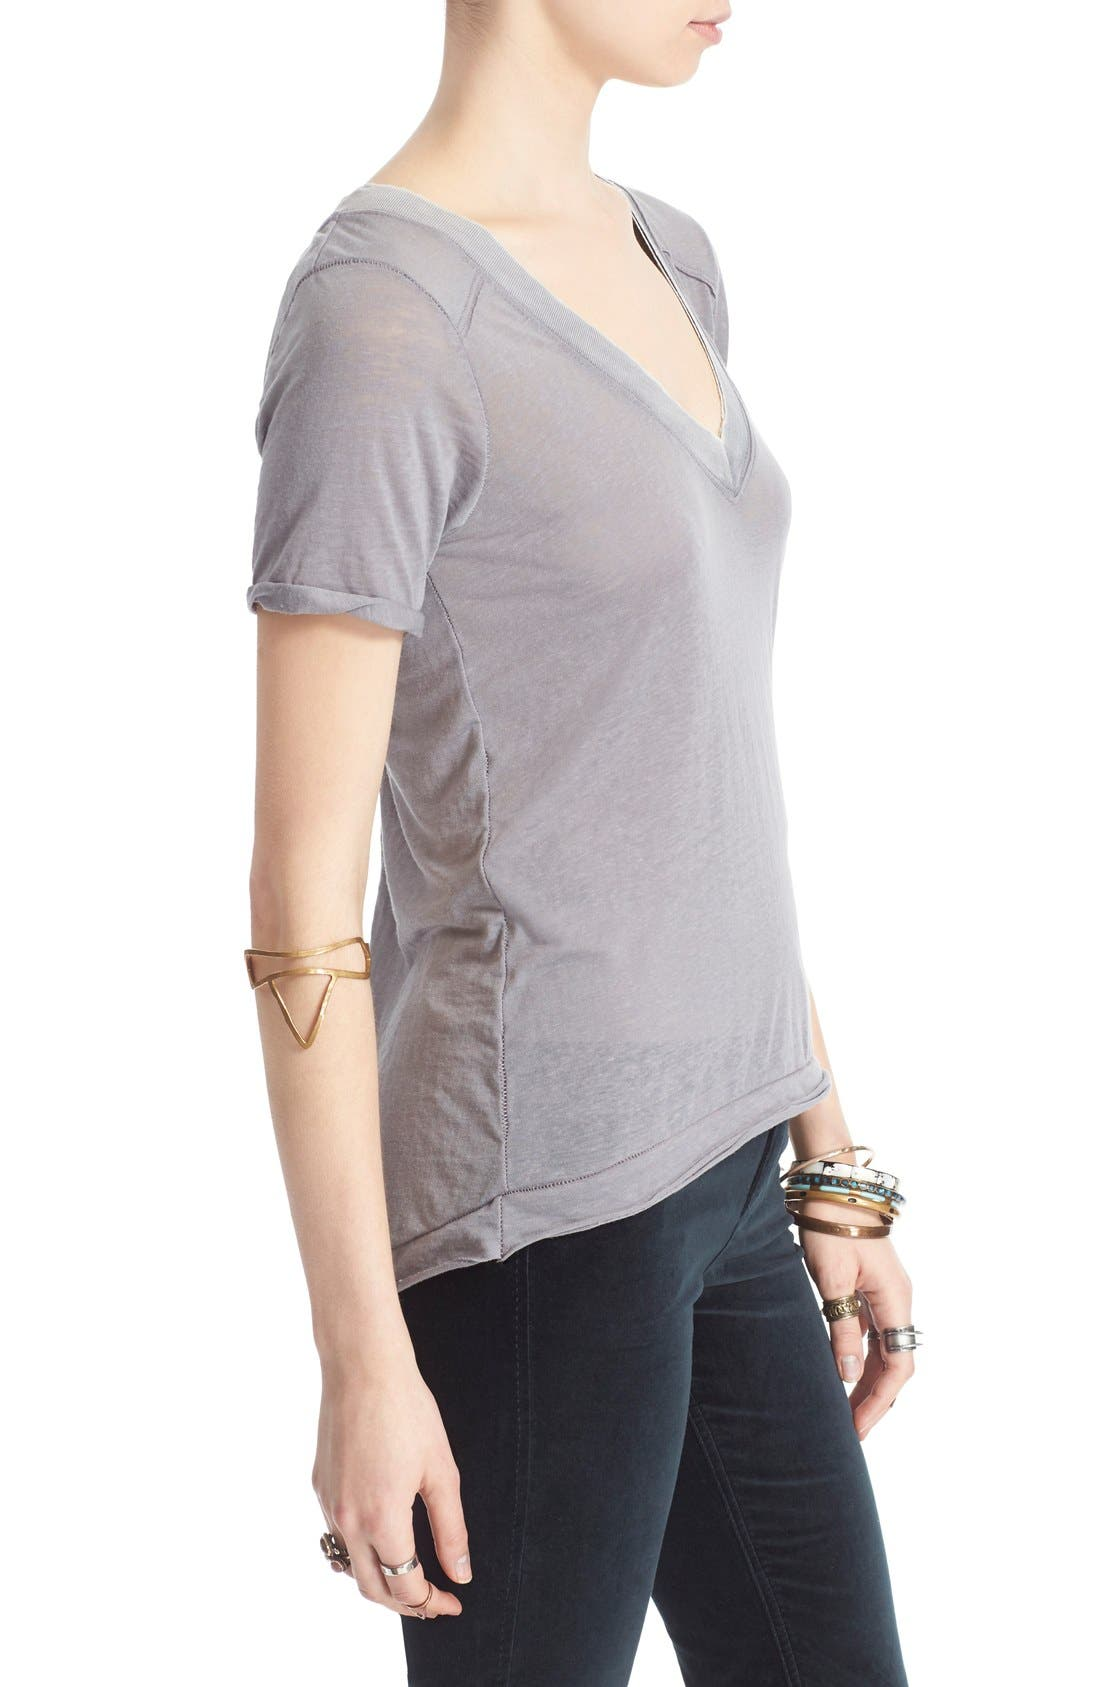 FREE PEOPLE, 'Pearls' Raw Edge V-Neck Tee, Alternate thumbnail 4, color, 030